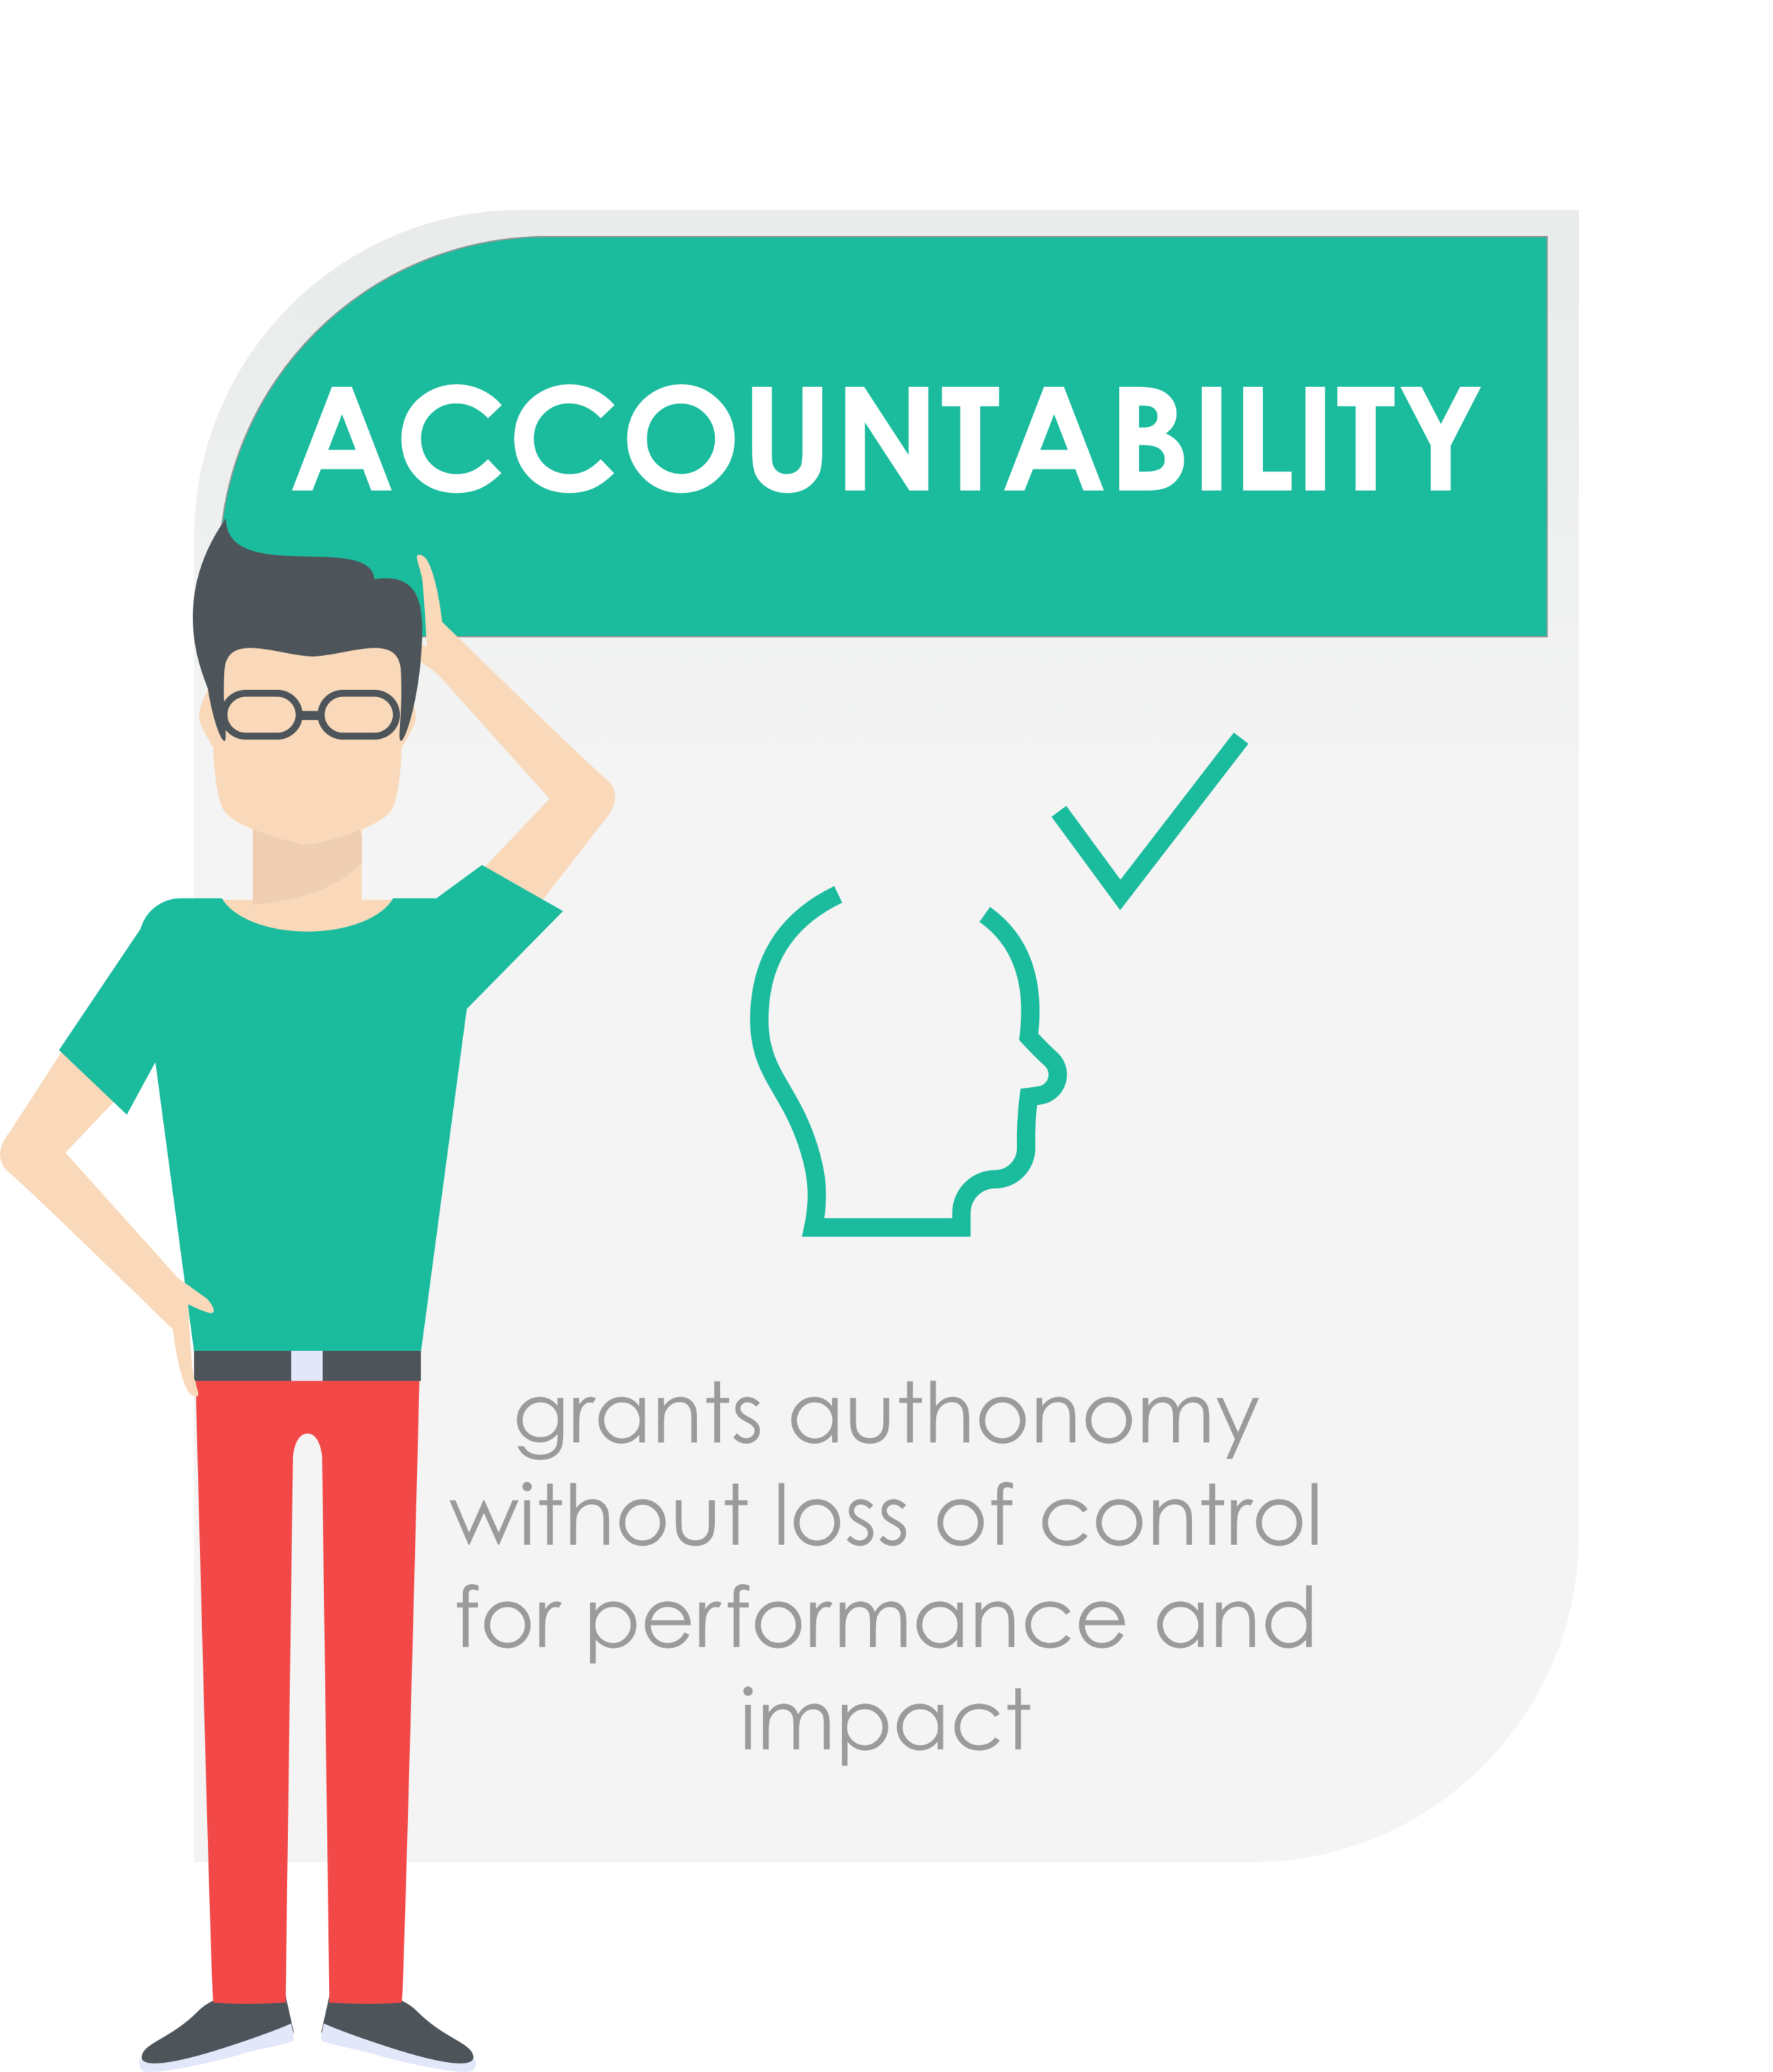 01 ACCOUNTABILITY Card - Small with figure.png